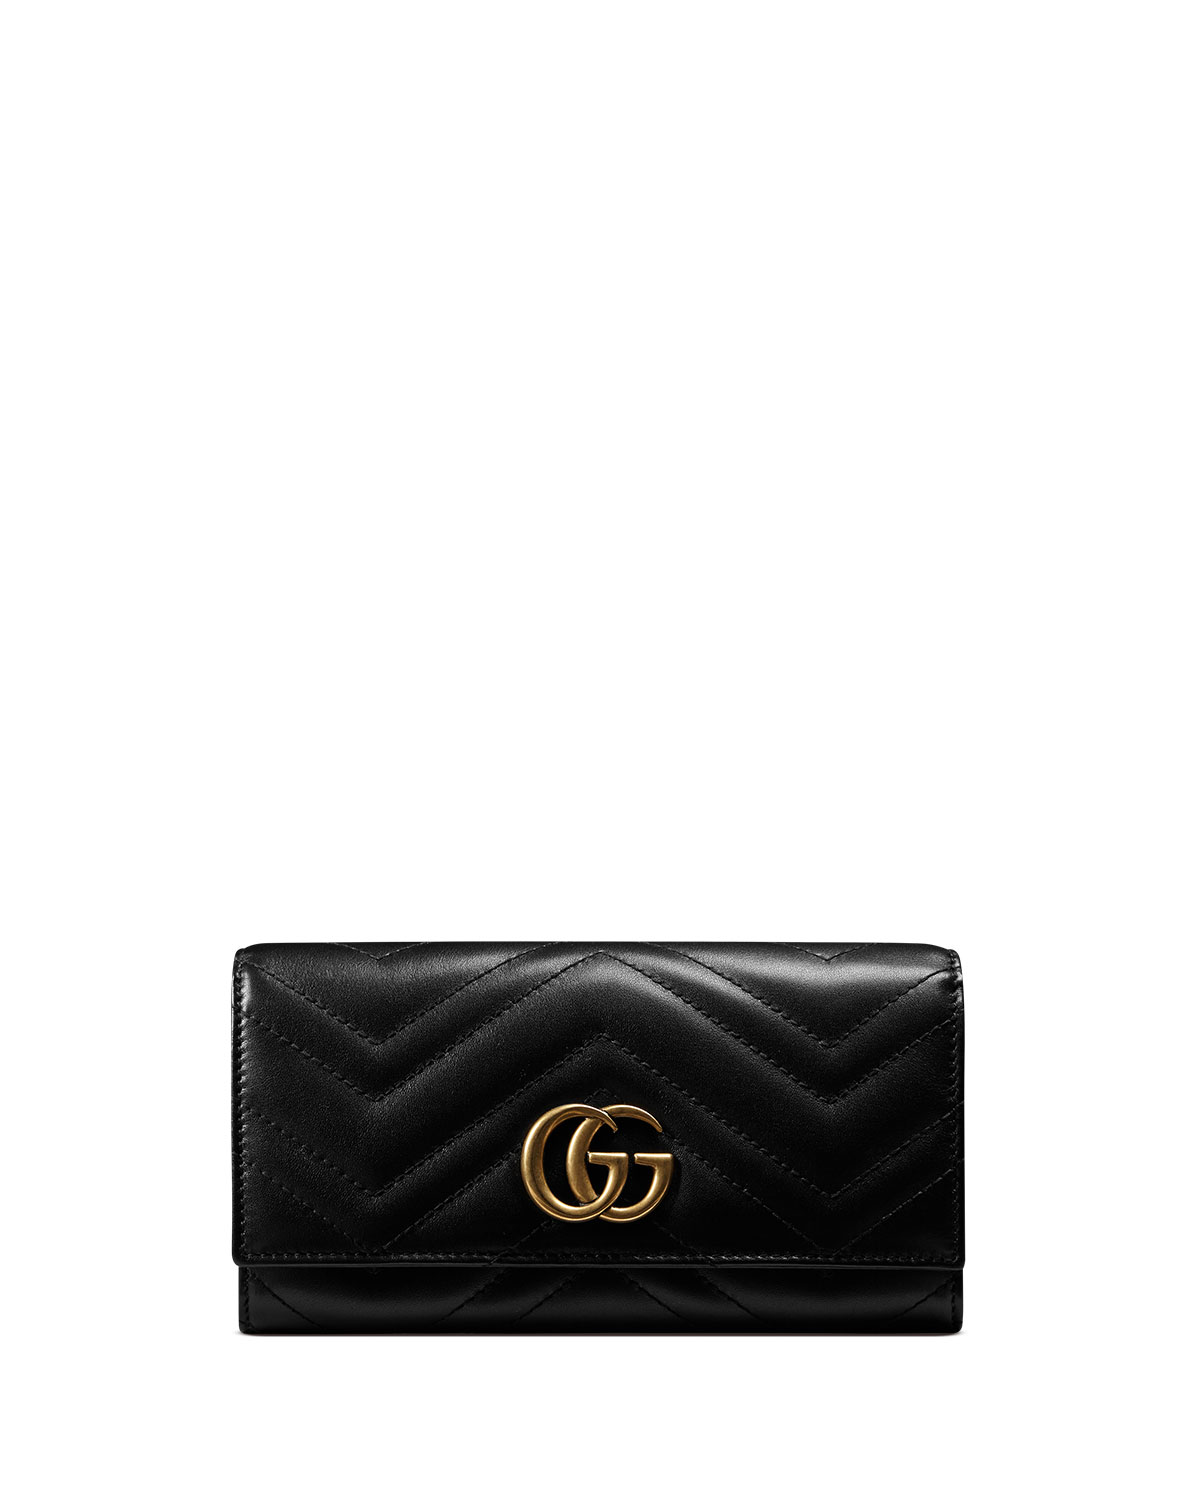 6abe0056589c Gucci GG Marmont Medium Quilted Flap Wallet, Black | Neiman Marcus